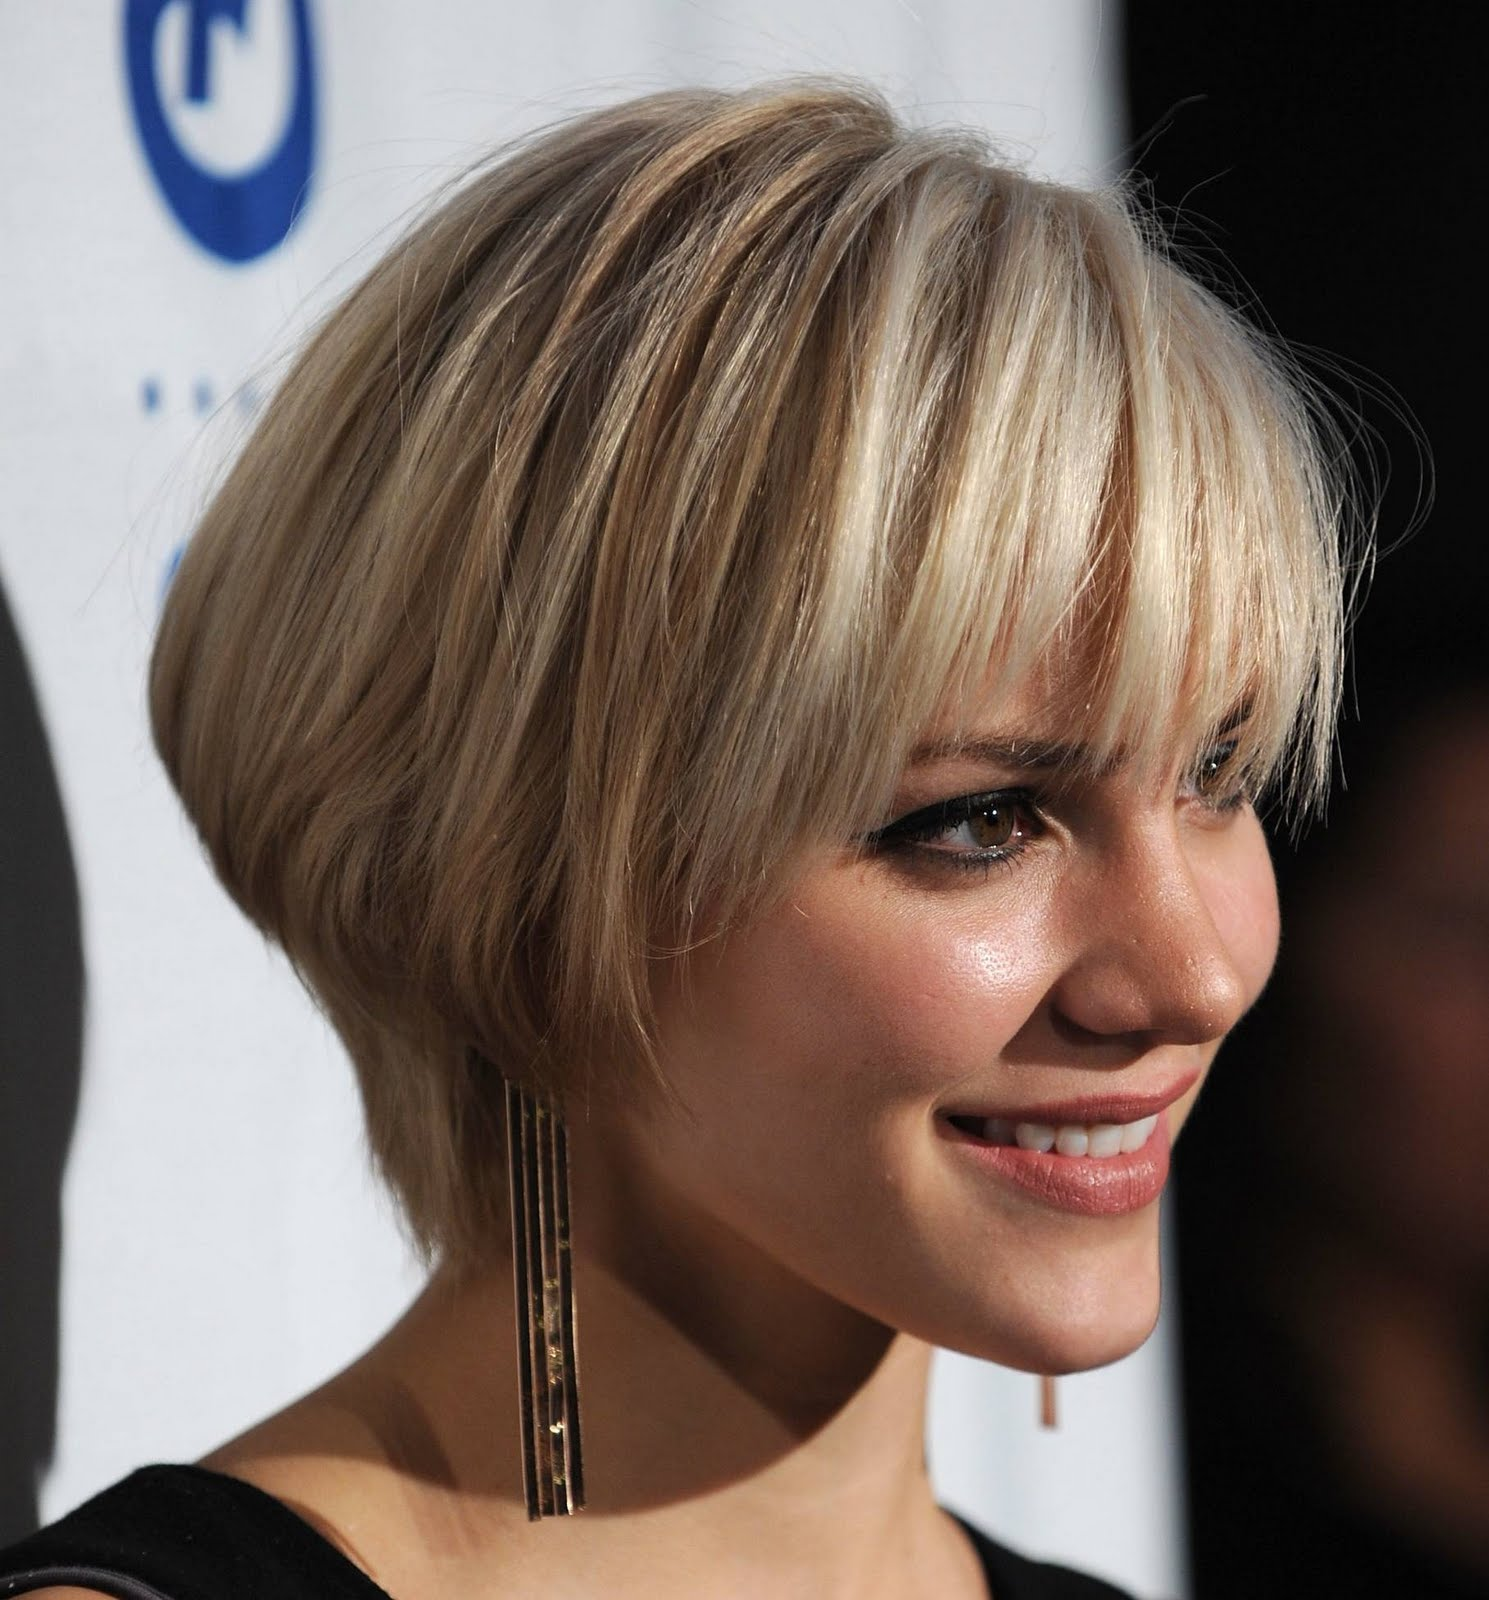 Short Layered Bob Hairstyles With Bangs: 50 Oustanding Short Bob Hairstyles